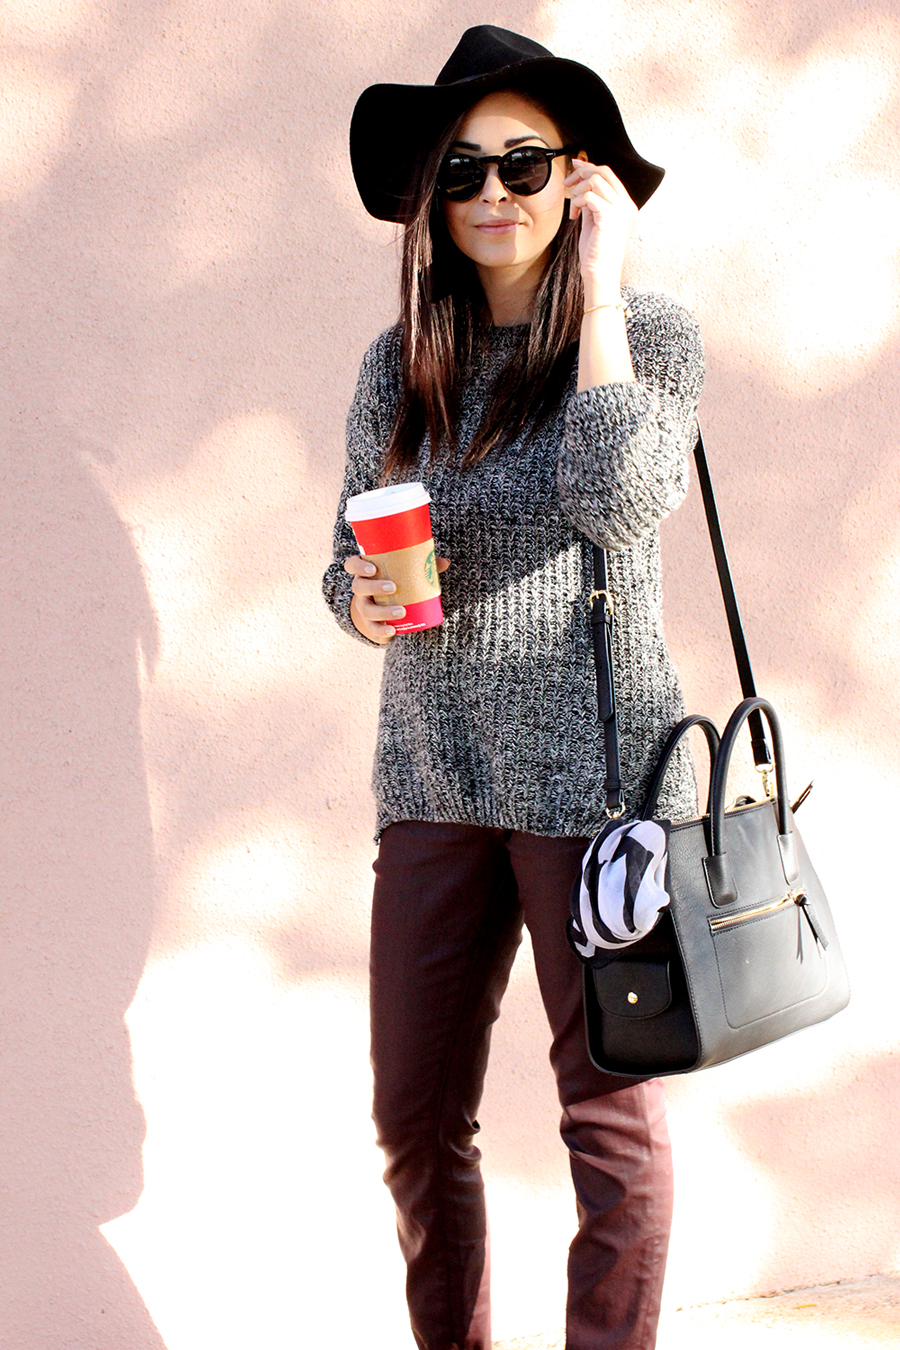 FIXIN-TO-THRILL-LEATHER-PANTS-KNITS-SHEIN-LUCKY-BRAND-NOVEMBER-ATX-AUSTIN-STYLE-BLOG-FW15-TRENDY-CHIC-GLAM-TEXAS-6